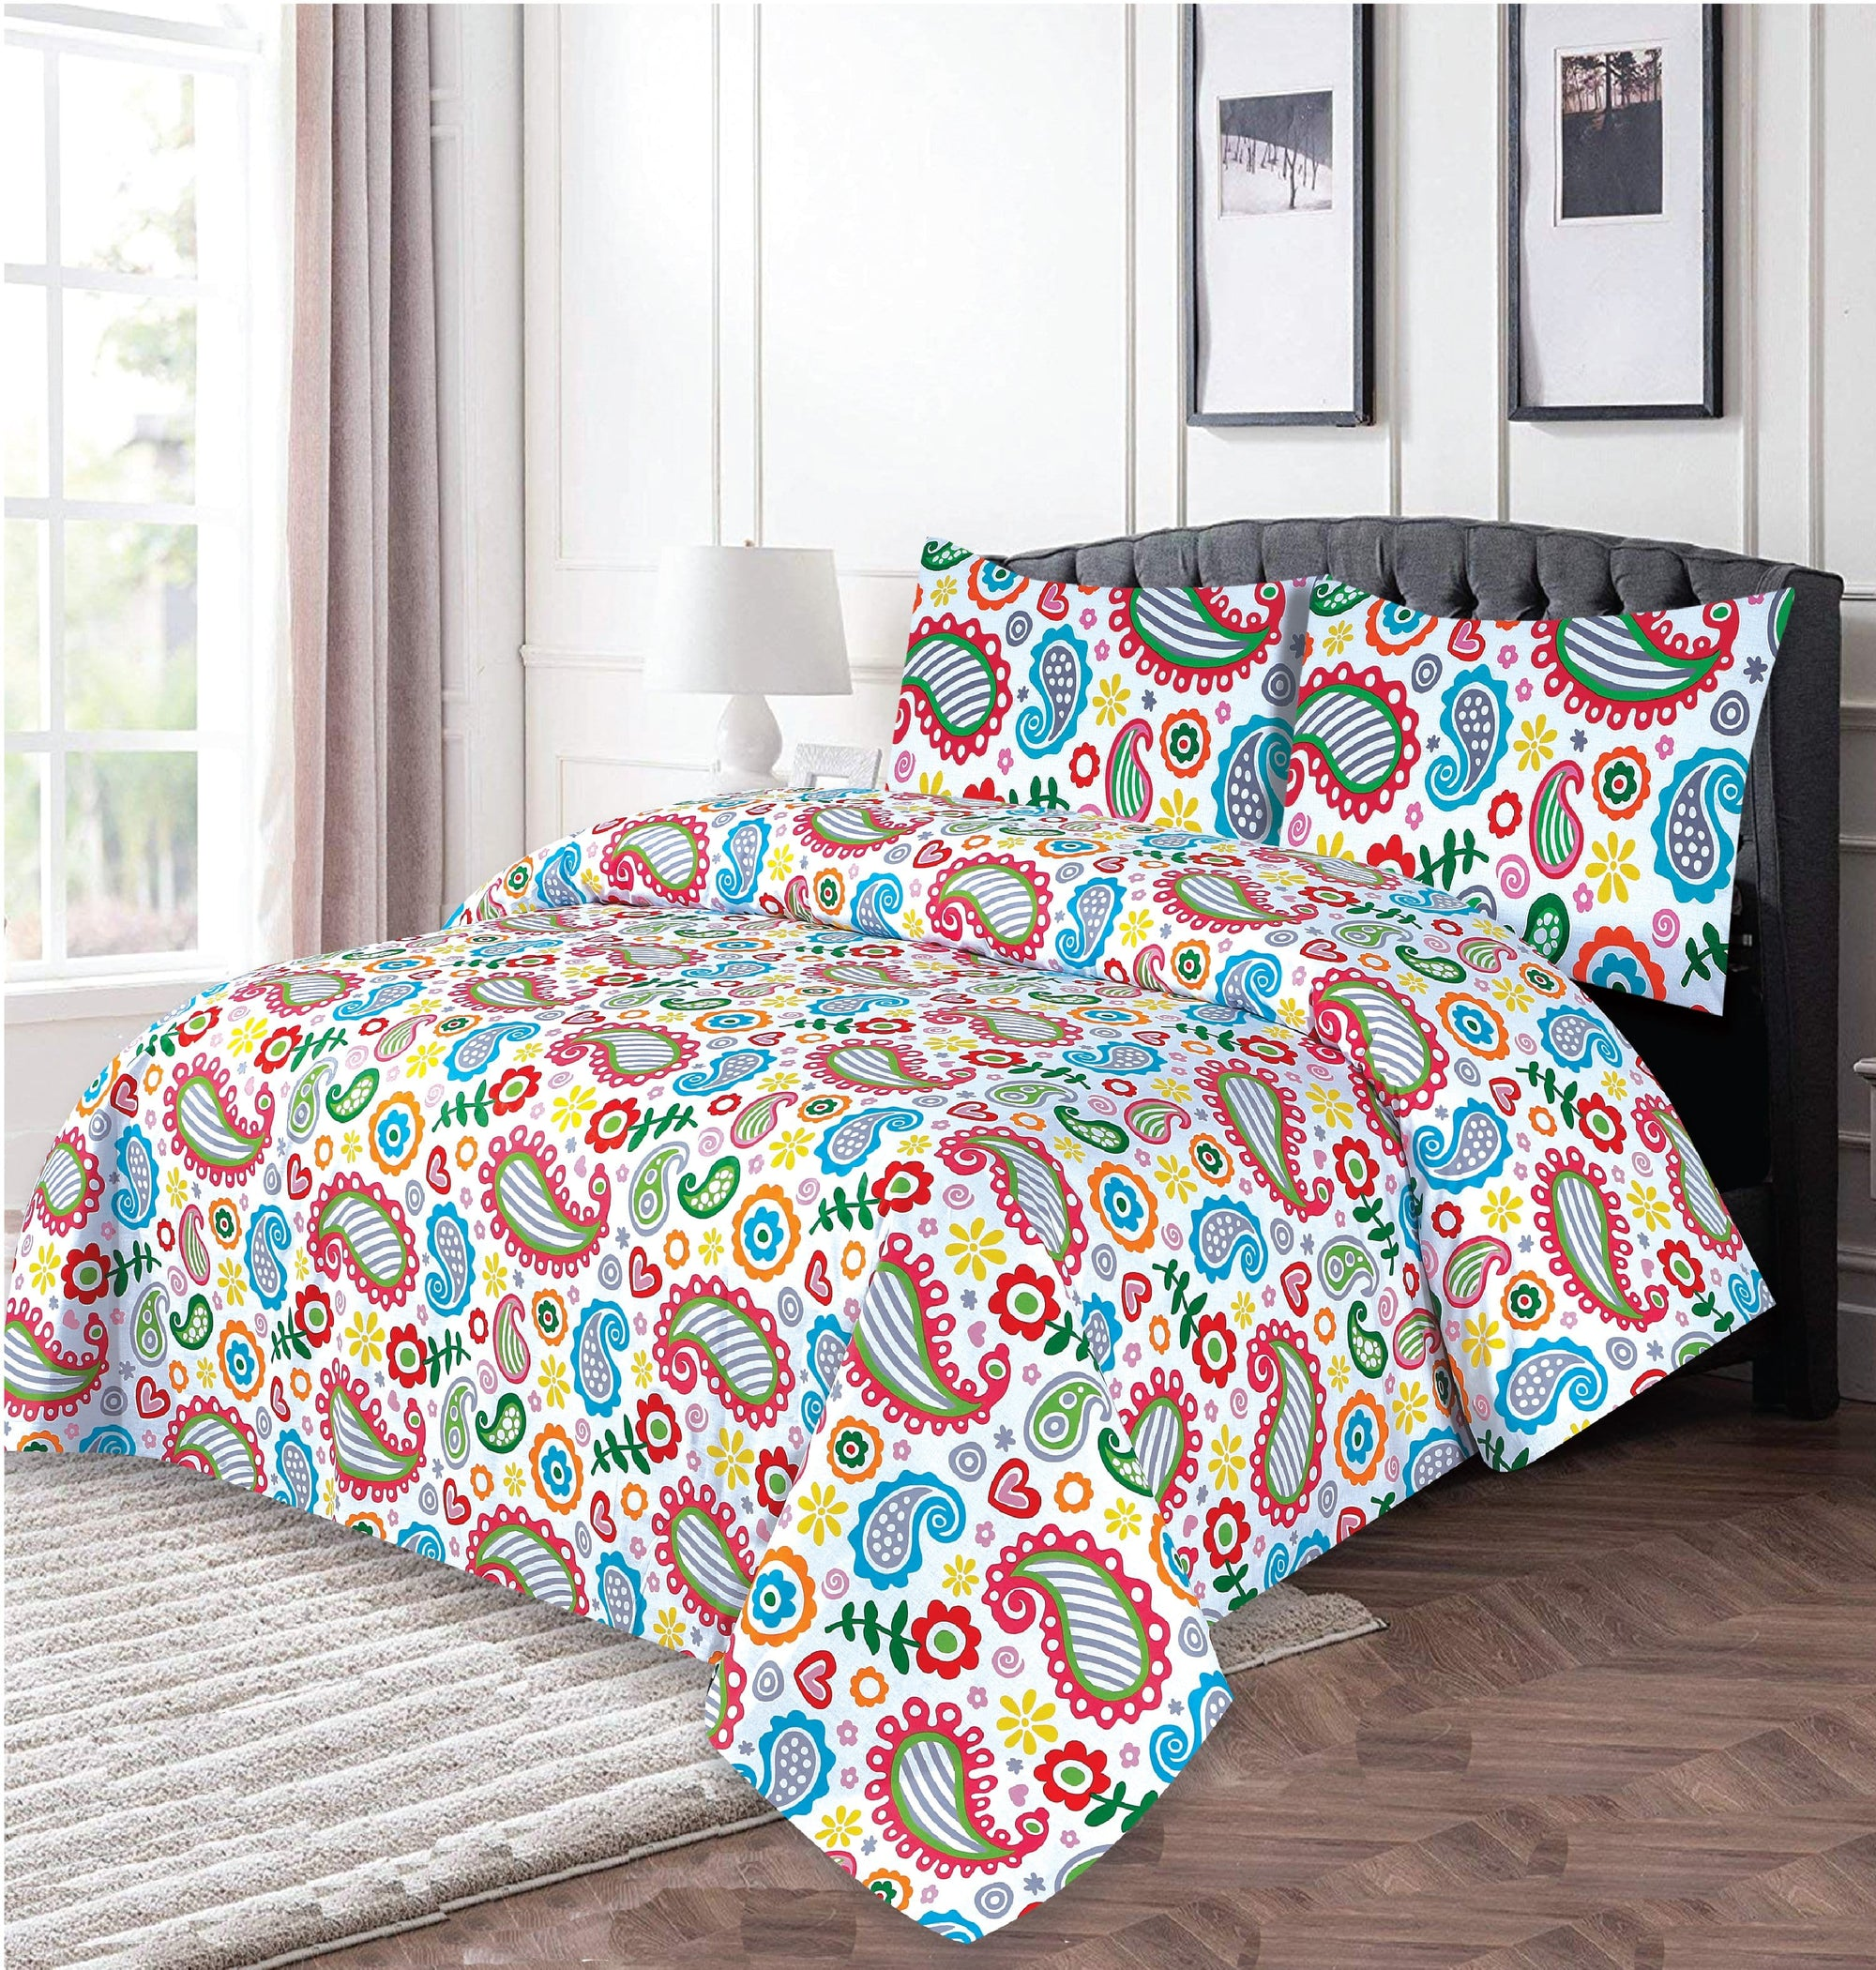 Grace D258-Cotton PC King Size Bedsheet with 2 Pillow Covers.